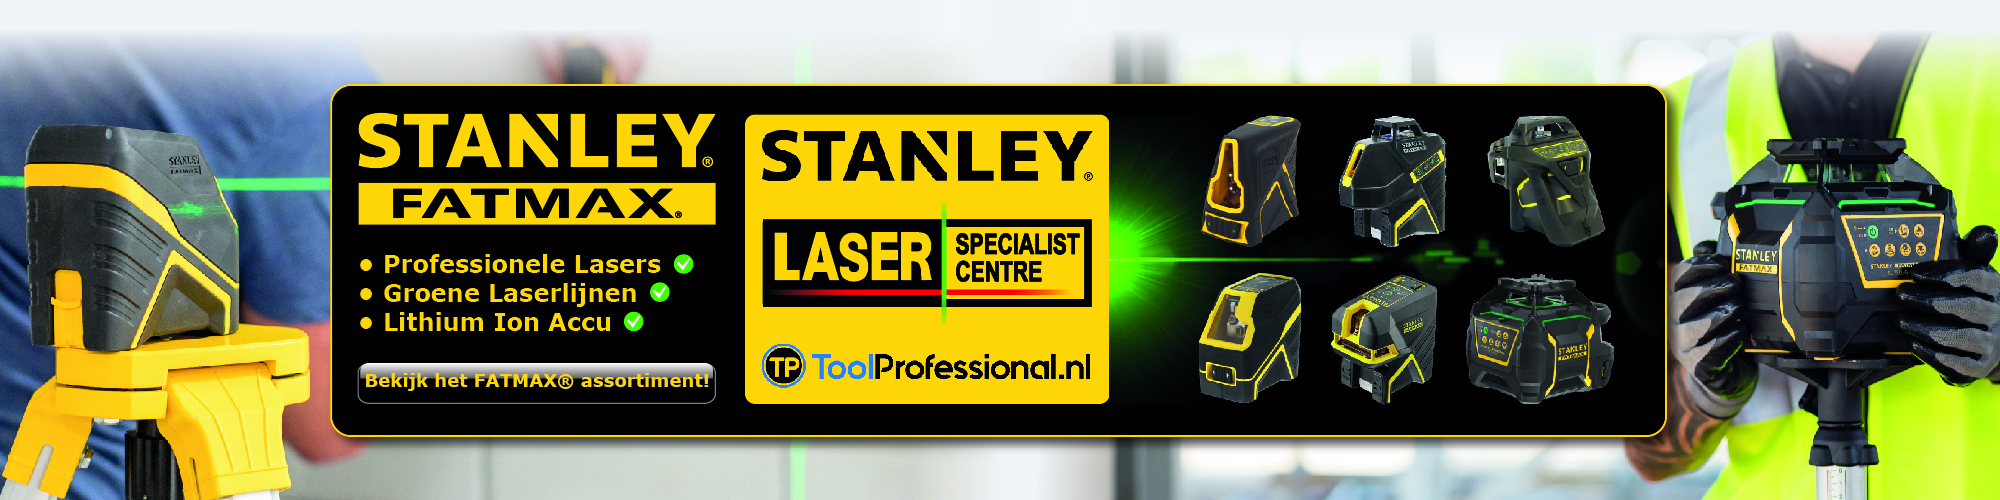 ToolProfessional banner 1